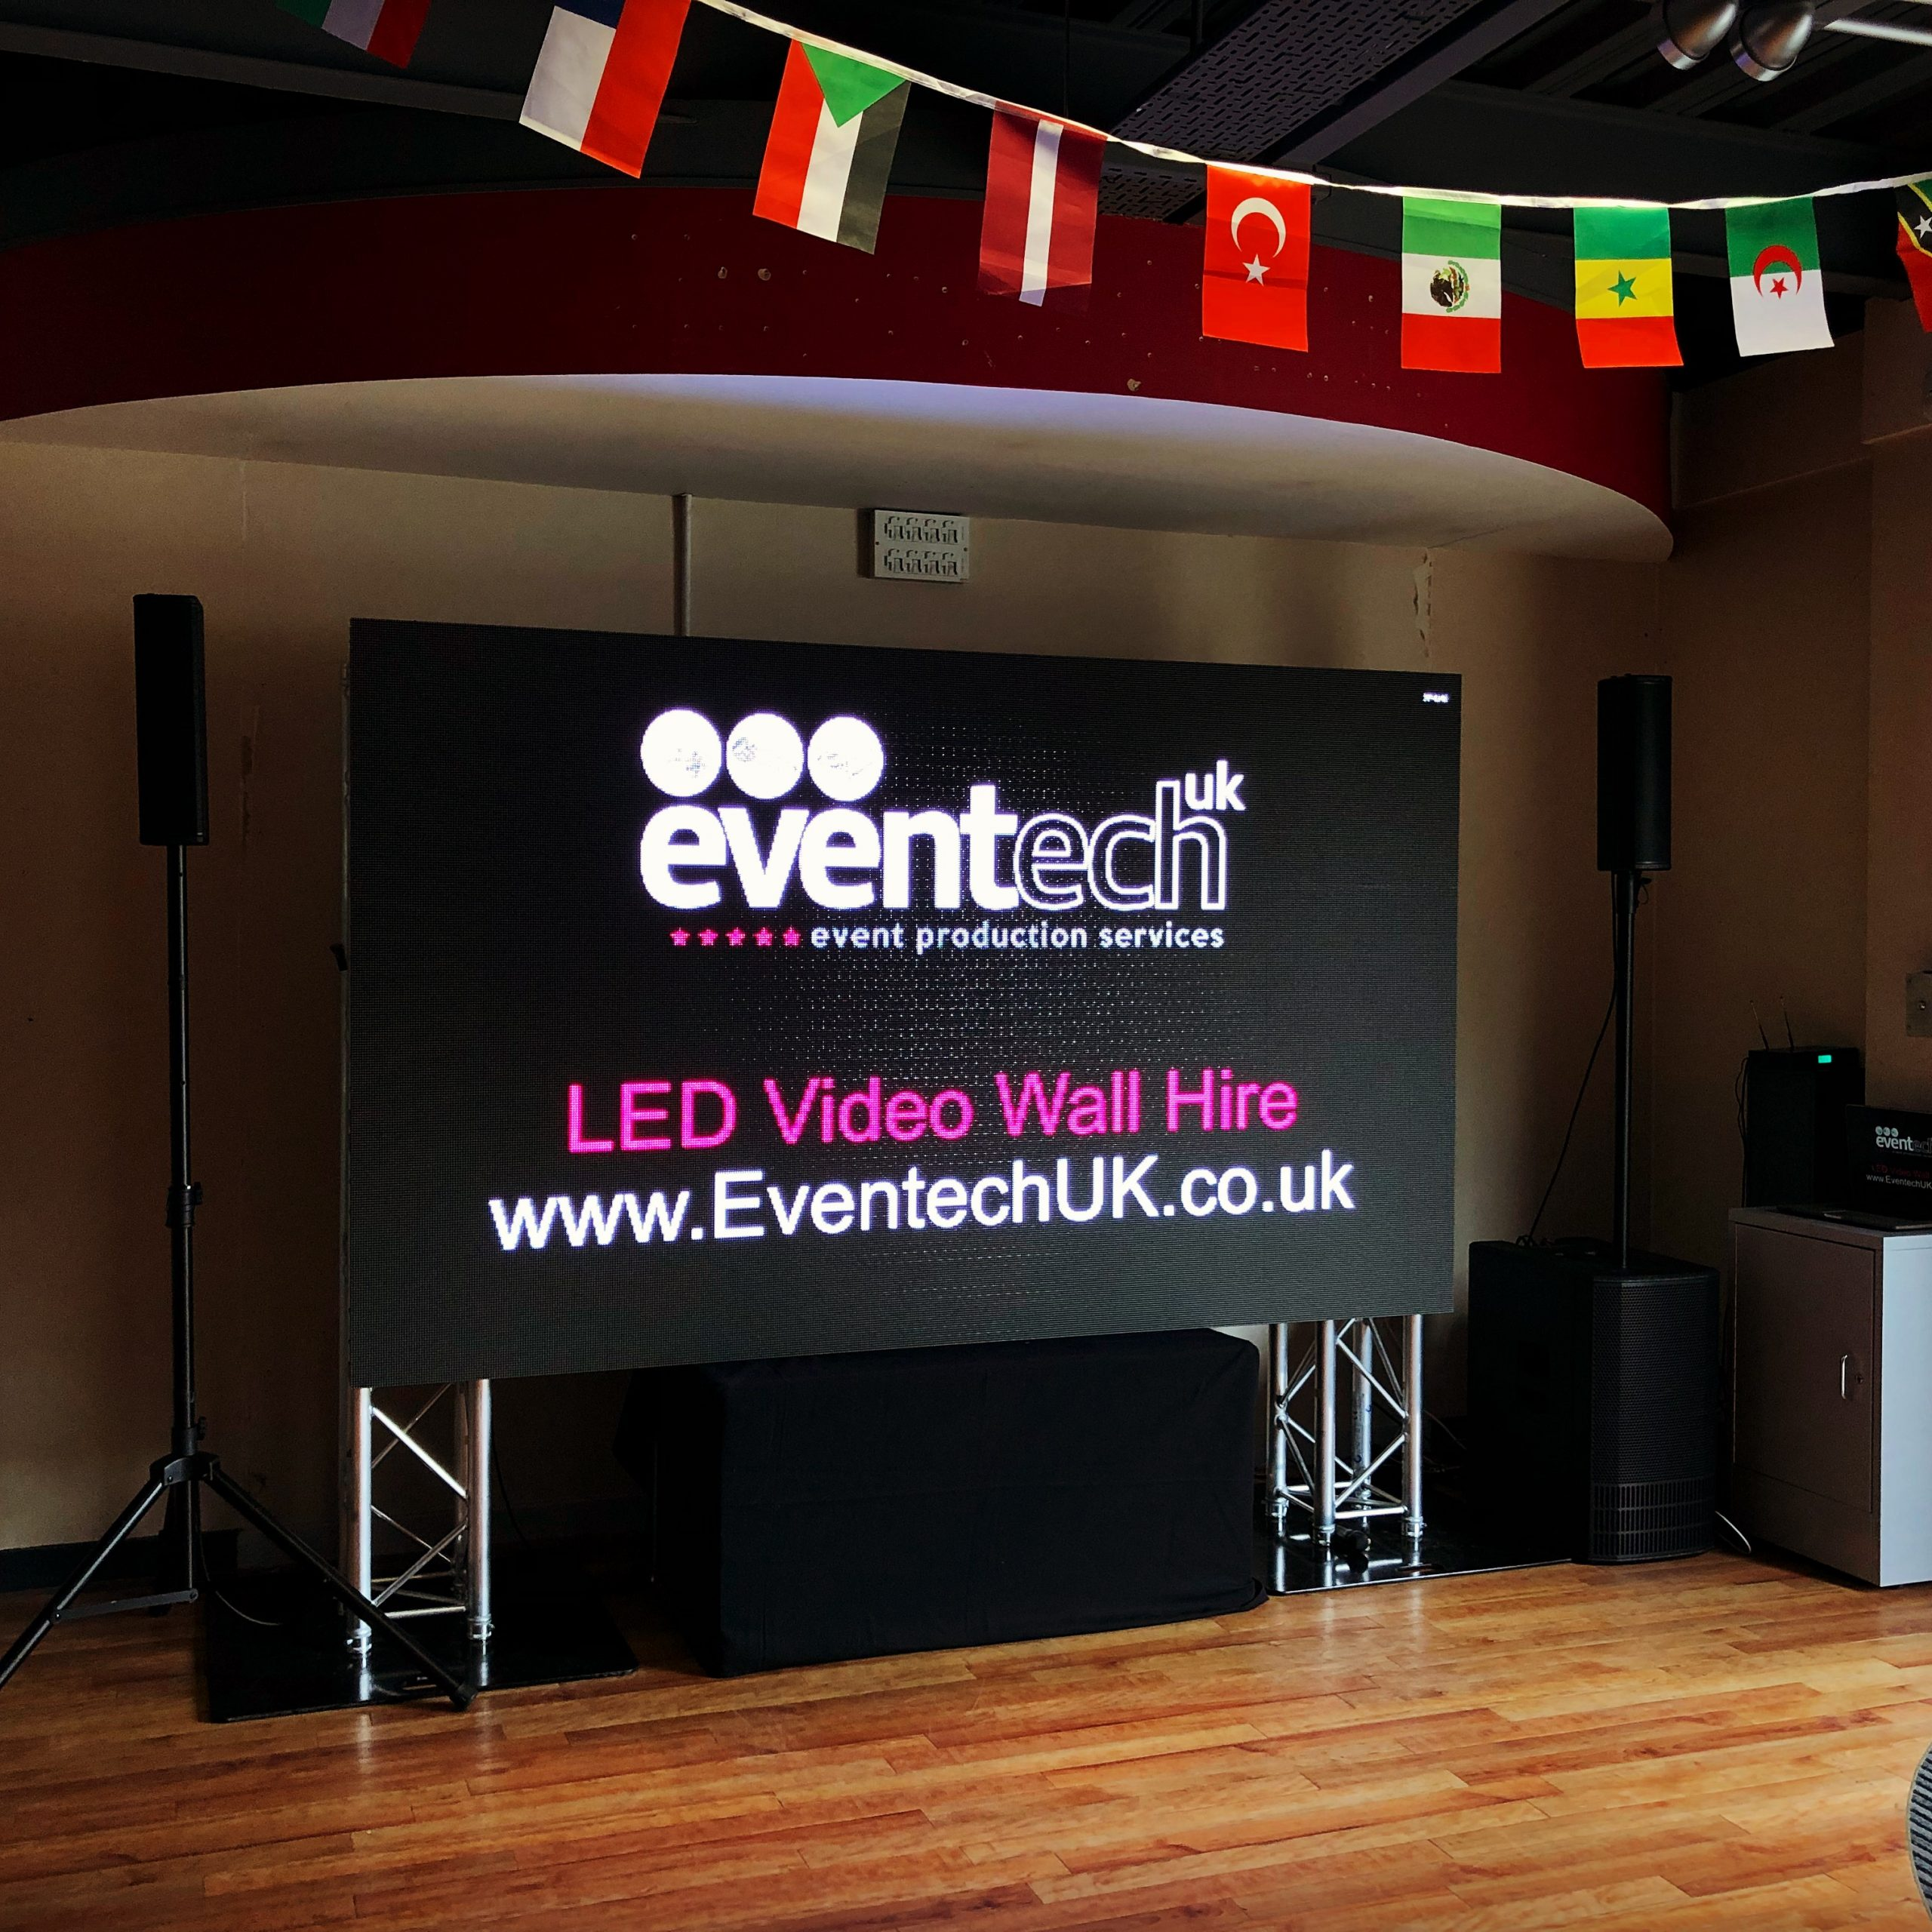 Video Wall Hire from Eventech UK